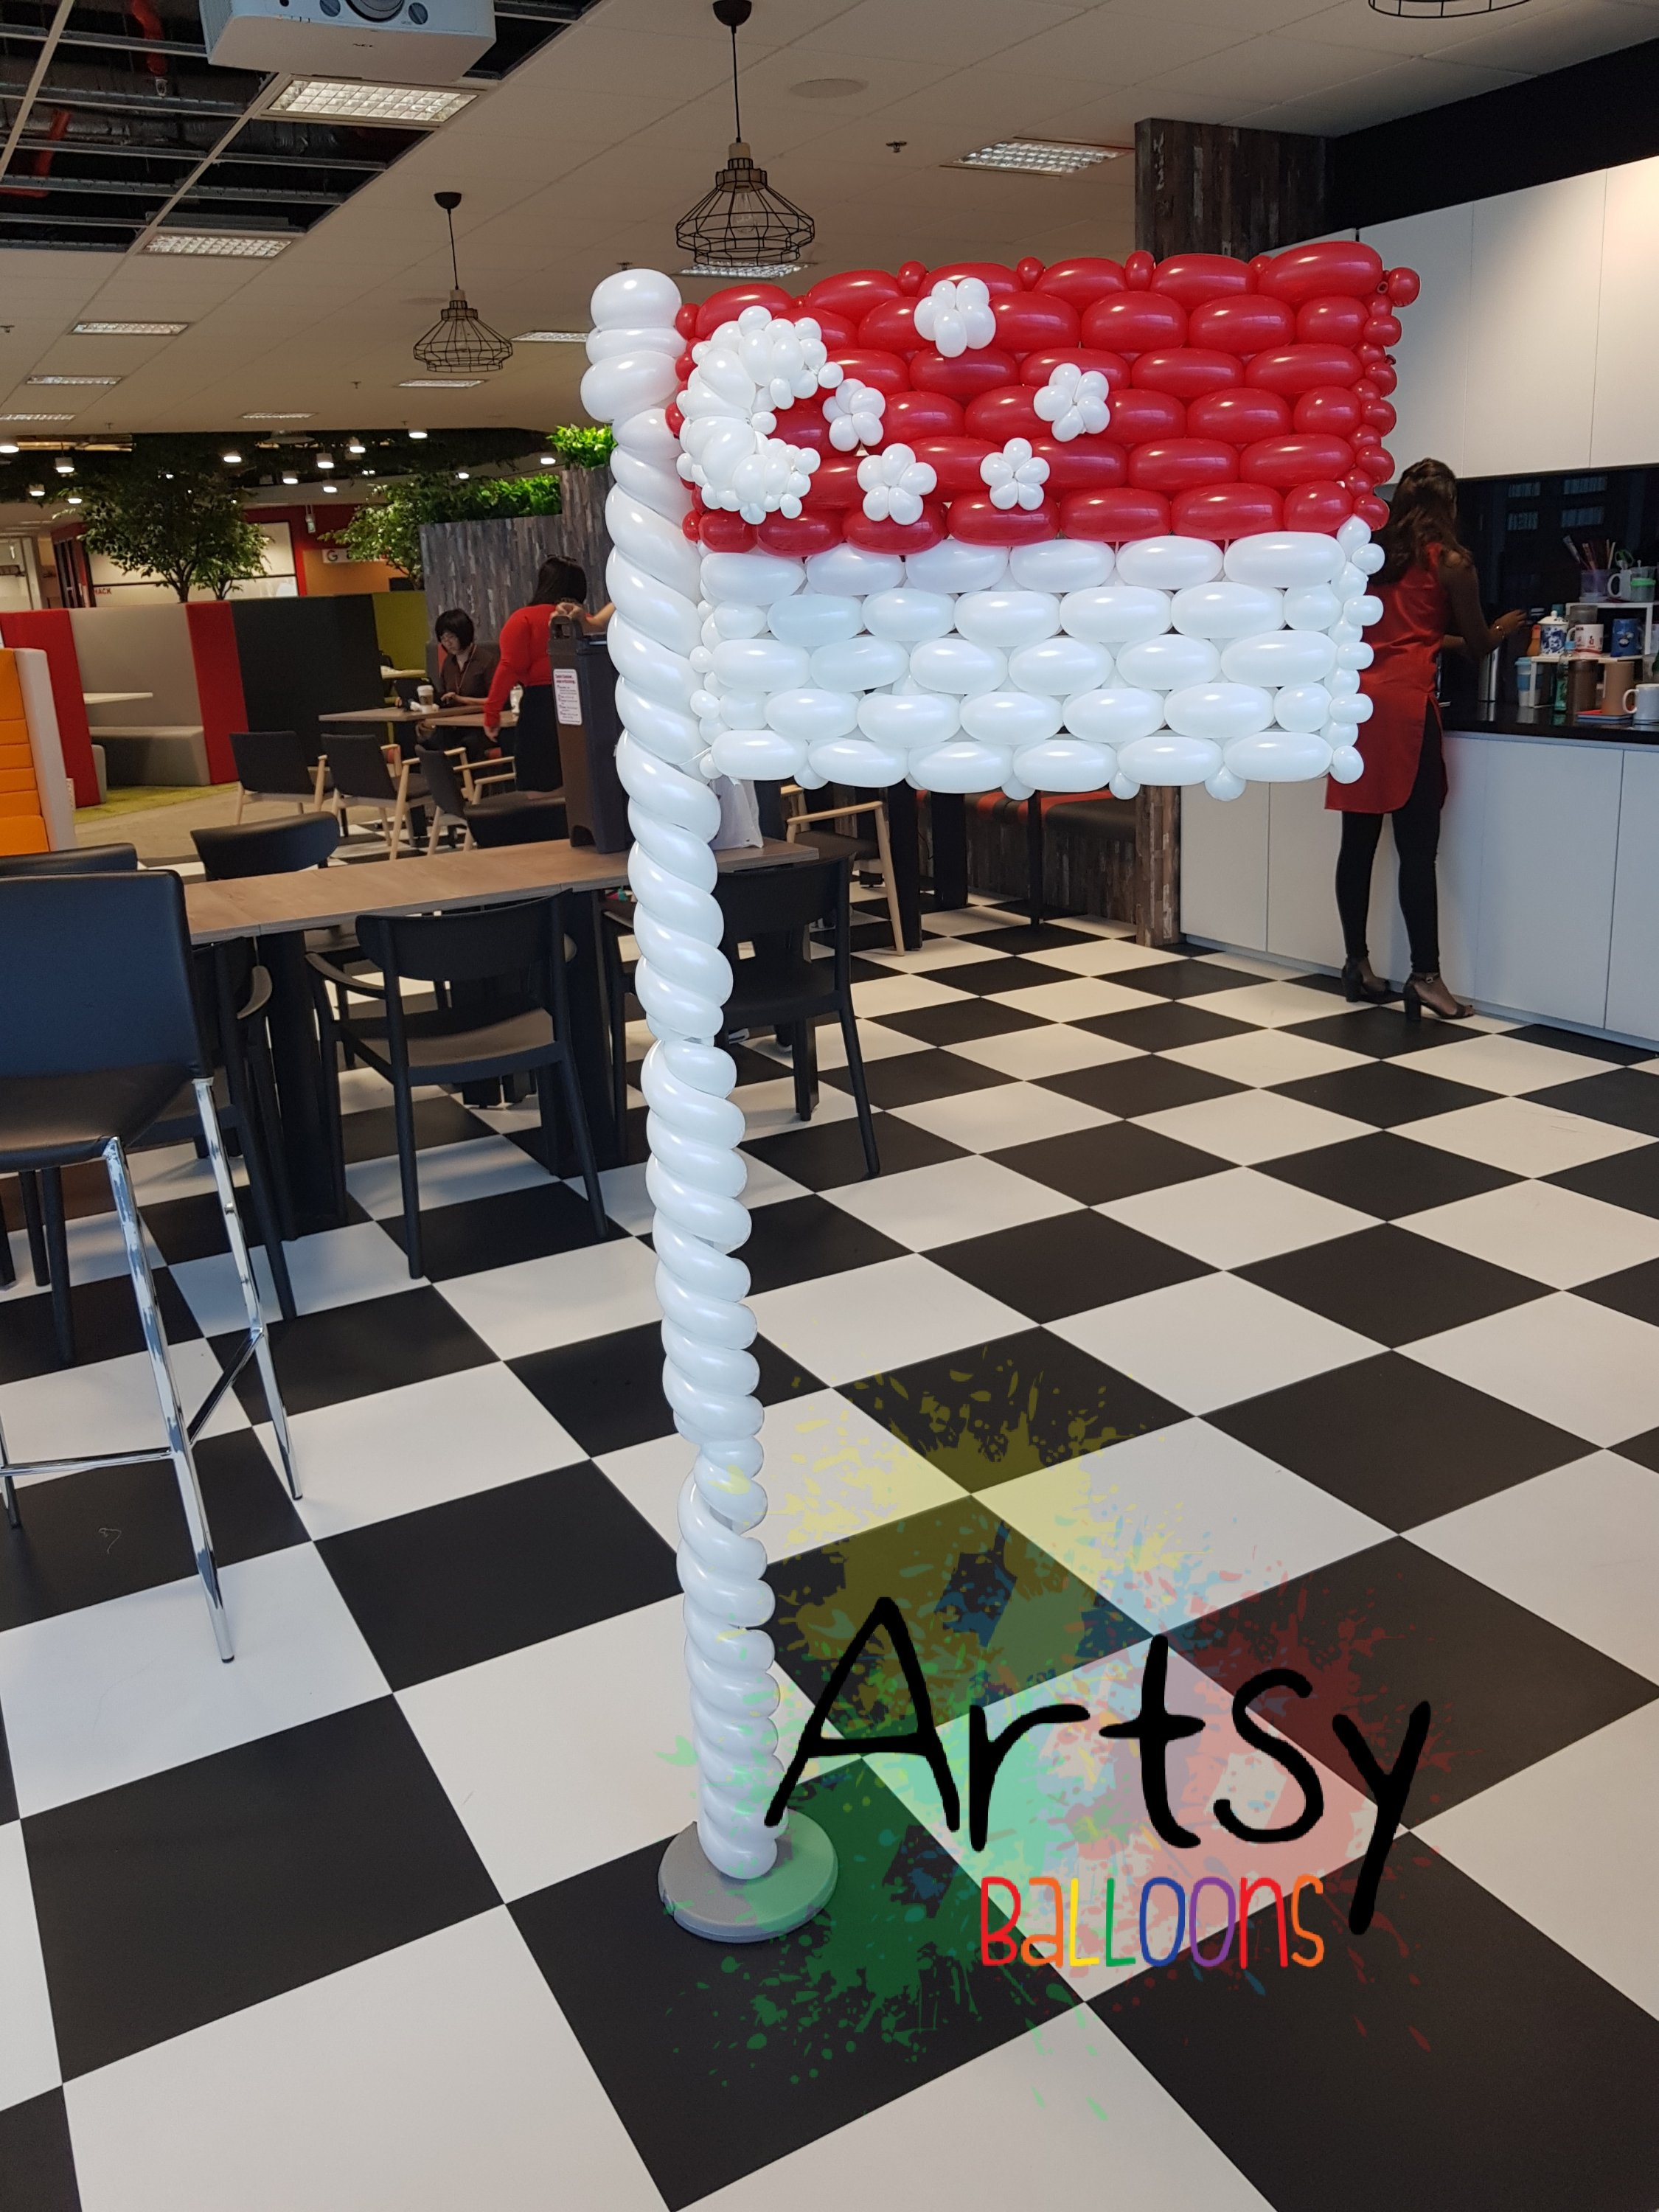 , Singapore themed balloon backdrop for DBS Singapore, Singapore Balloon Decoration Services - Balloon Workshop and Balloon Sculpting